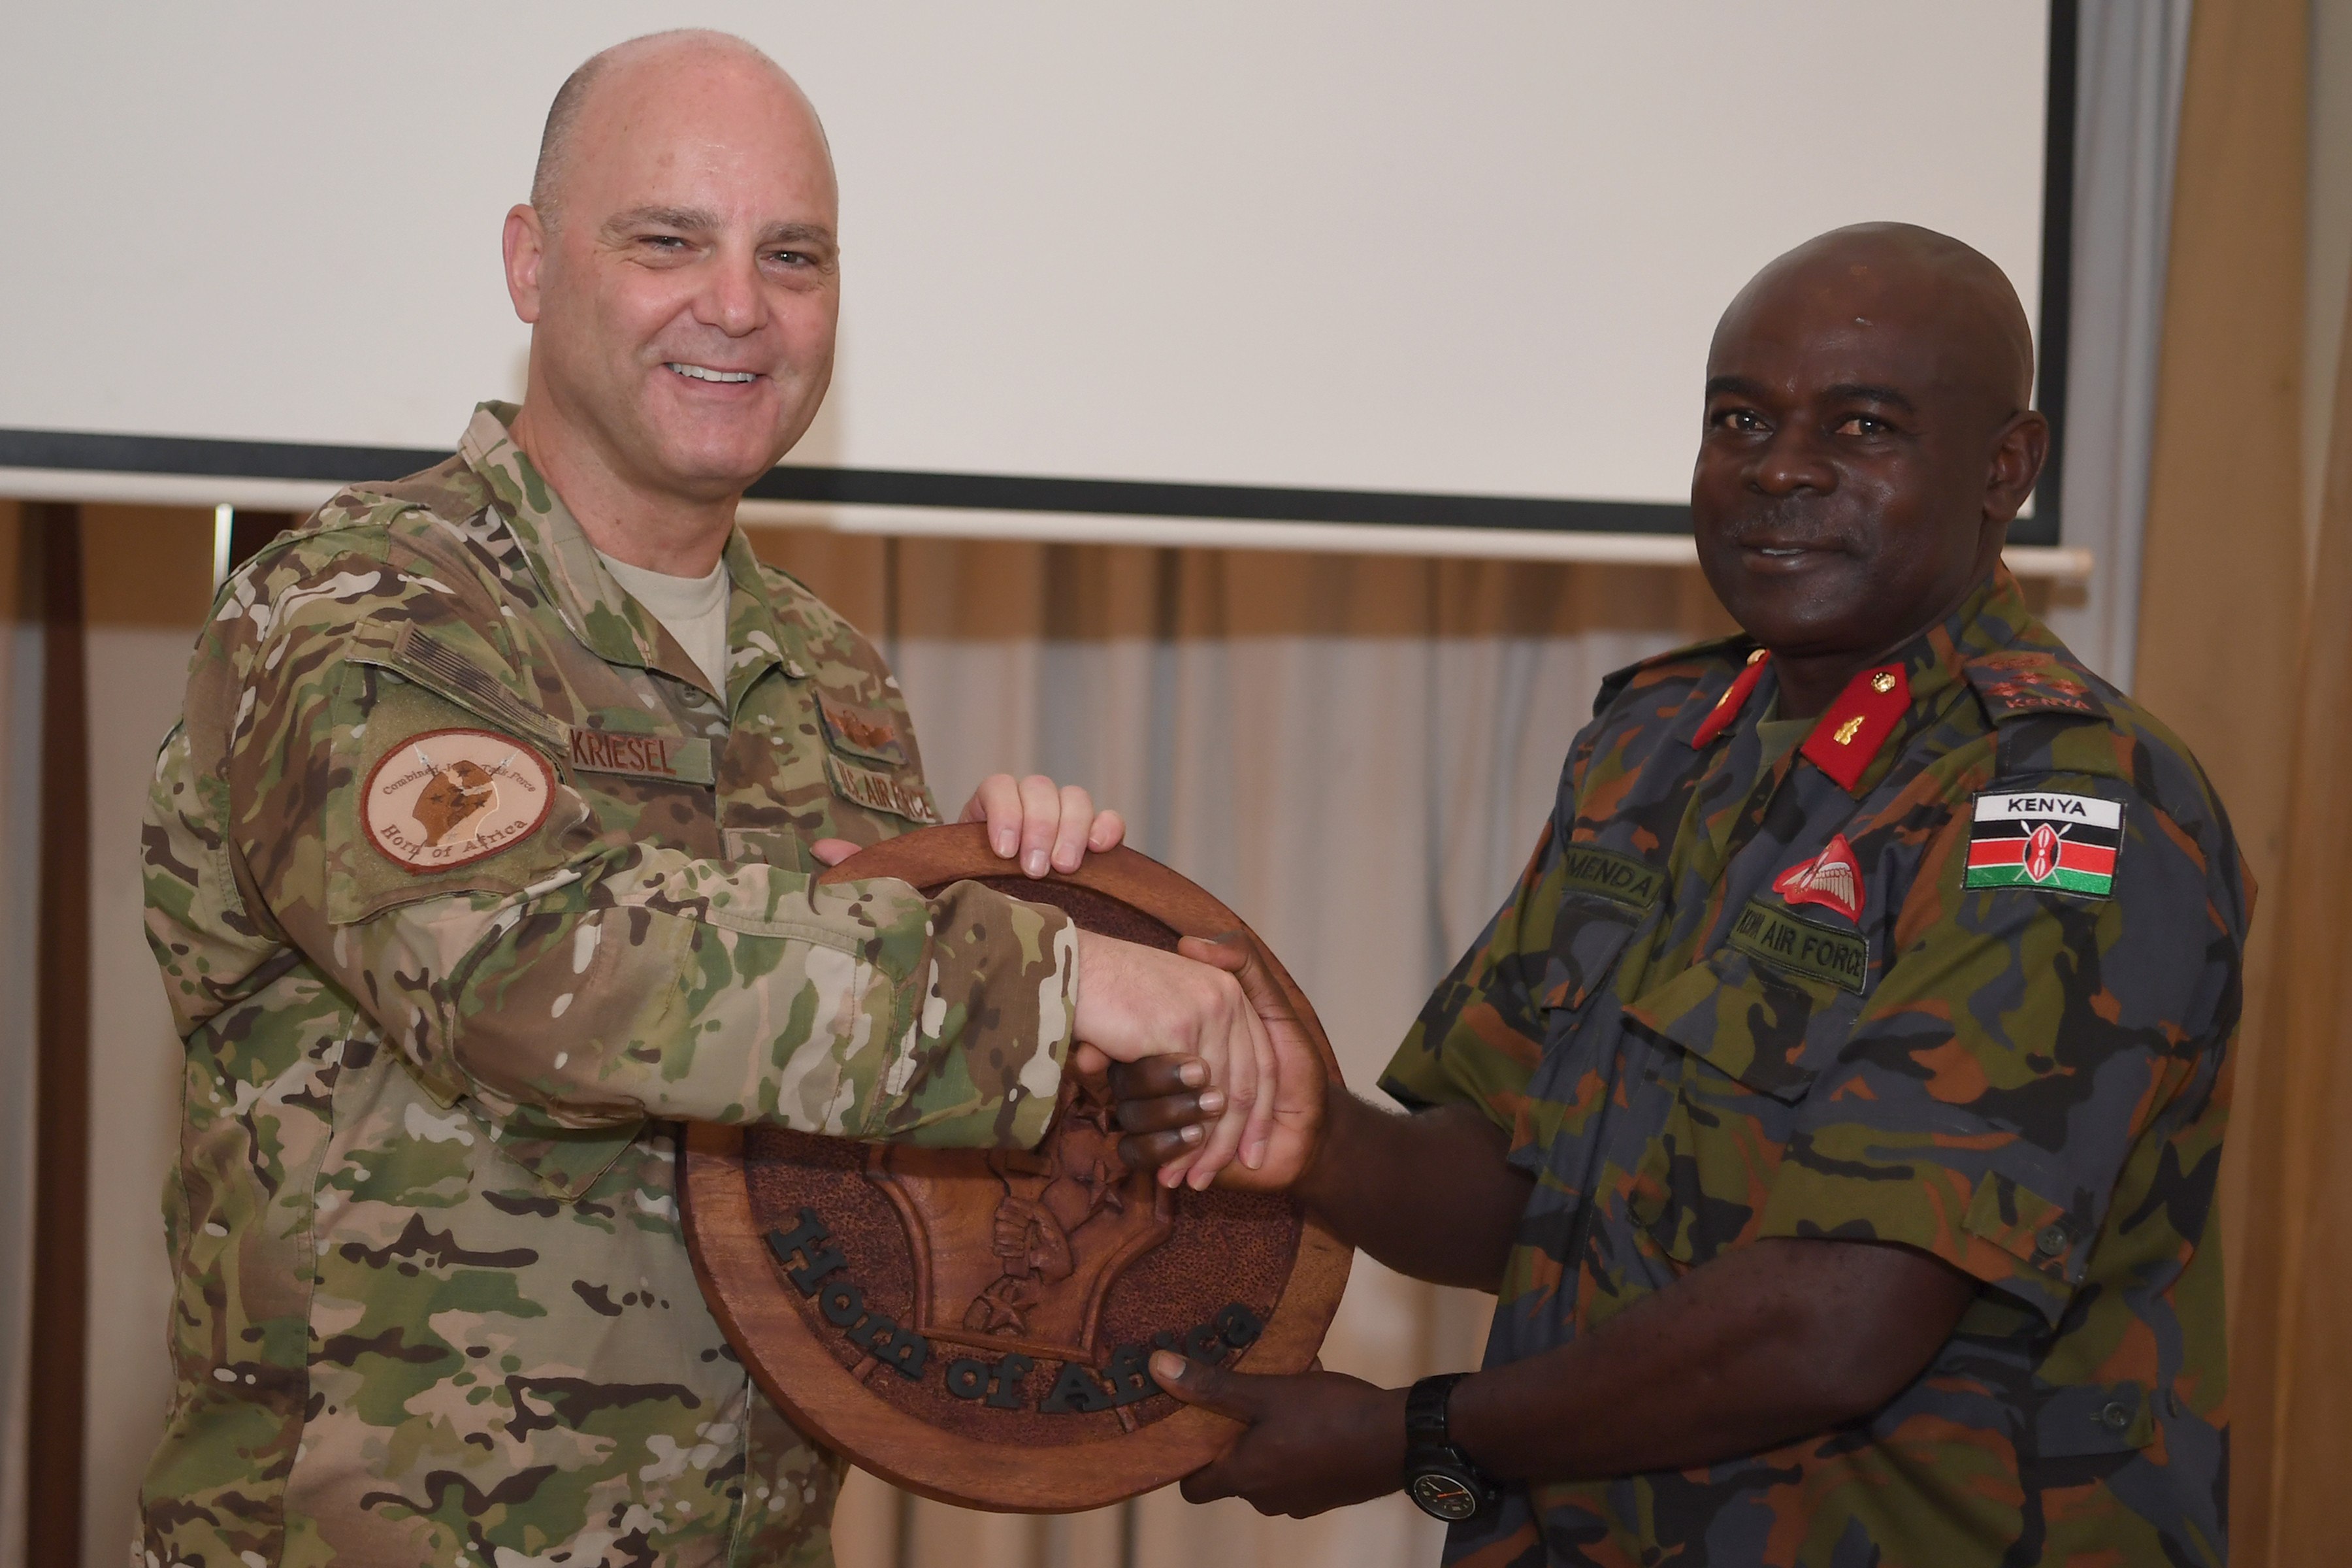 U.S. Air Force Brig. Gen. James R. Kriesel, Combined Joint Task Force—Horn of Africa deputy commanding general, exchanges gifts with Kenya Air Force Brigadier John Omenda, base commander at Laikipia Air Base, during the closing ceremony for African Partnership Flight Kenya 2019, Nanyuki, Kenya, August 25, 2019. The five-day event culminated with a Kenya Air Force-led exercise, Linda Rhino 2, using personnel recovery skills gained during the program. (U.S. Air Force photo by Master Sgt. Renae Pittman)